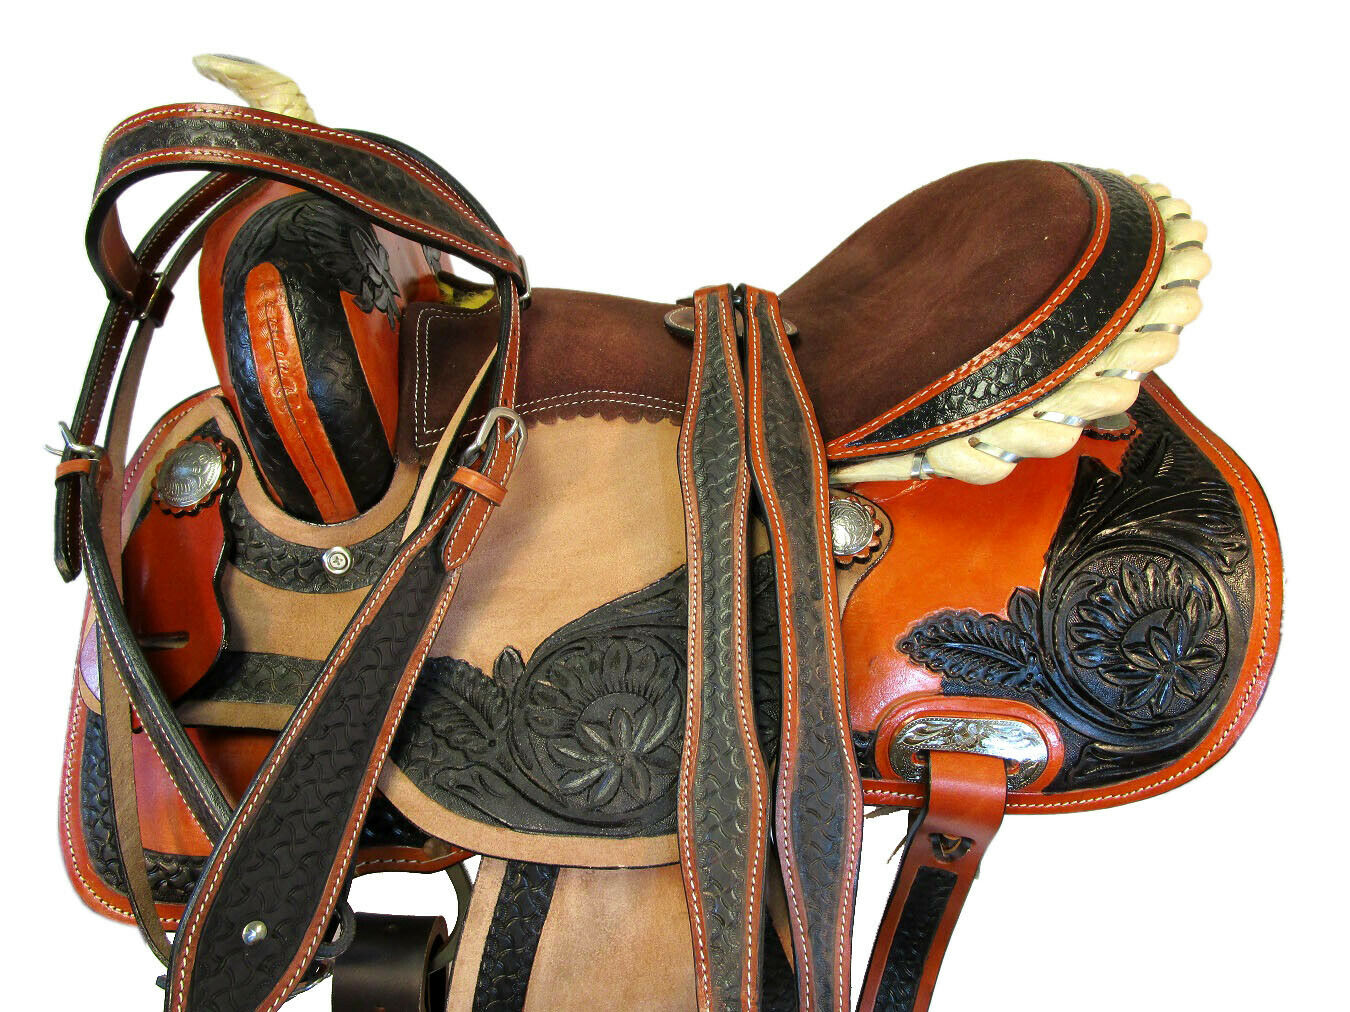 RODEO WESTERN RACING BARREL 15 16 PLEASURE TRAIL TOOLED LEATHER HORSE SADDLE SET